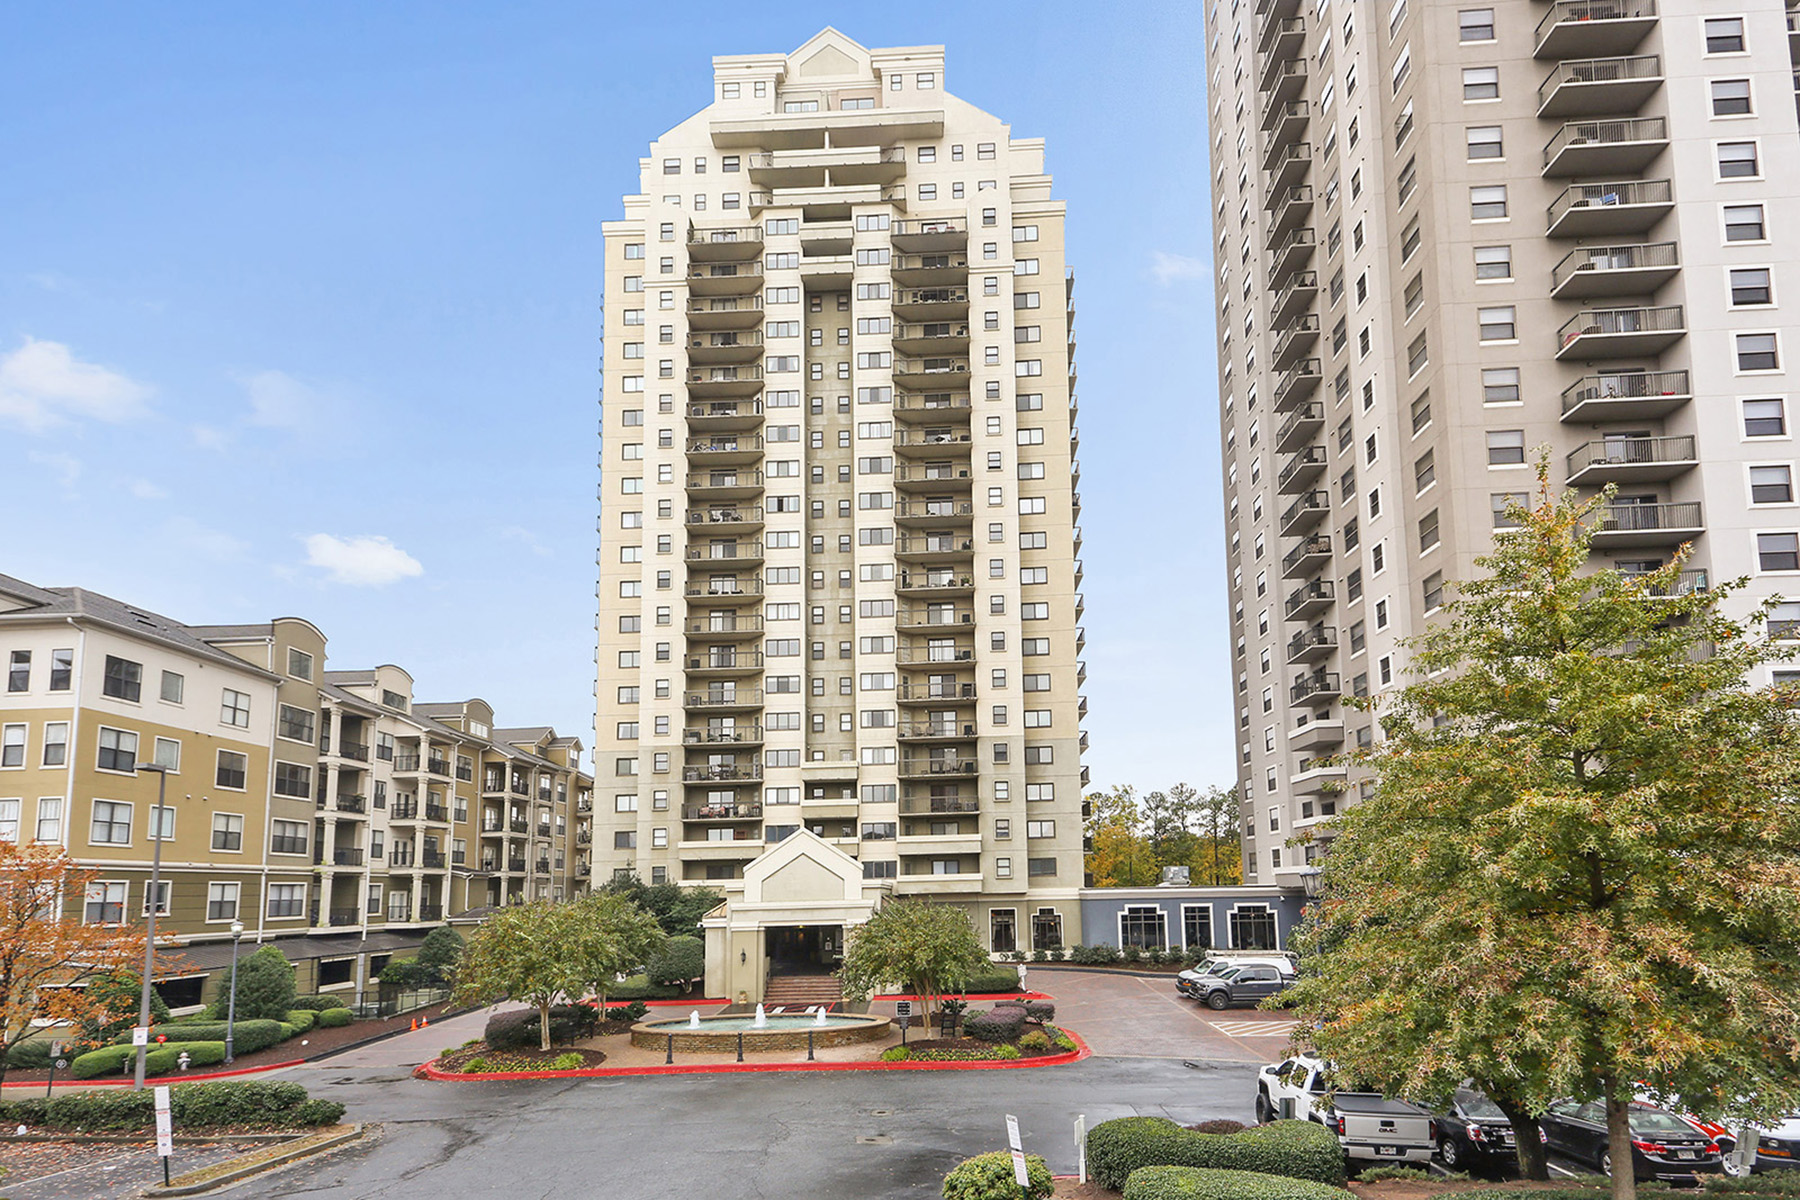 Condominium for Sale at Gorgeous One Bedroom High Rise Condo in Sandy Springs 799 Hammond Drive #303 Atlanta, Georgia 30328 United States